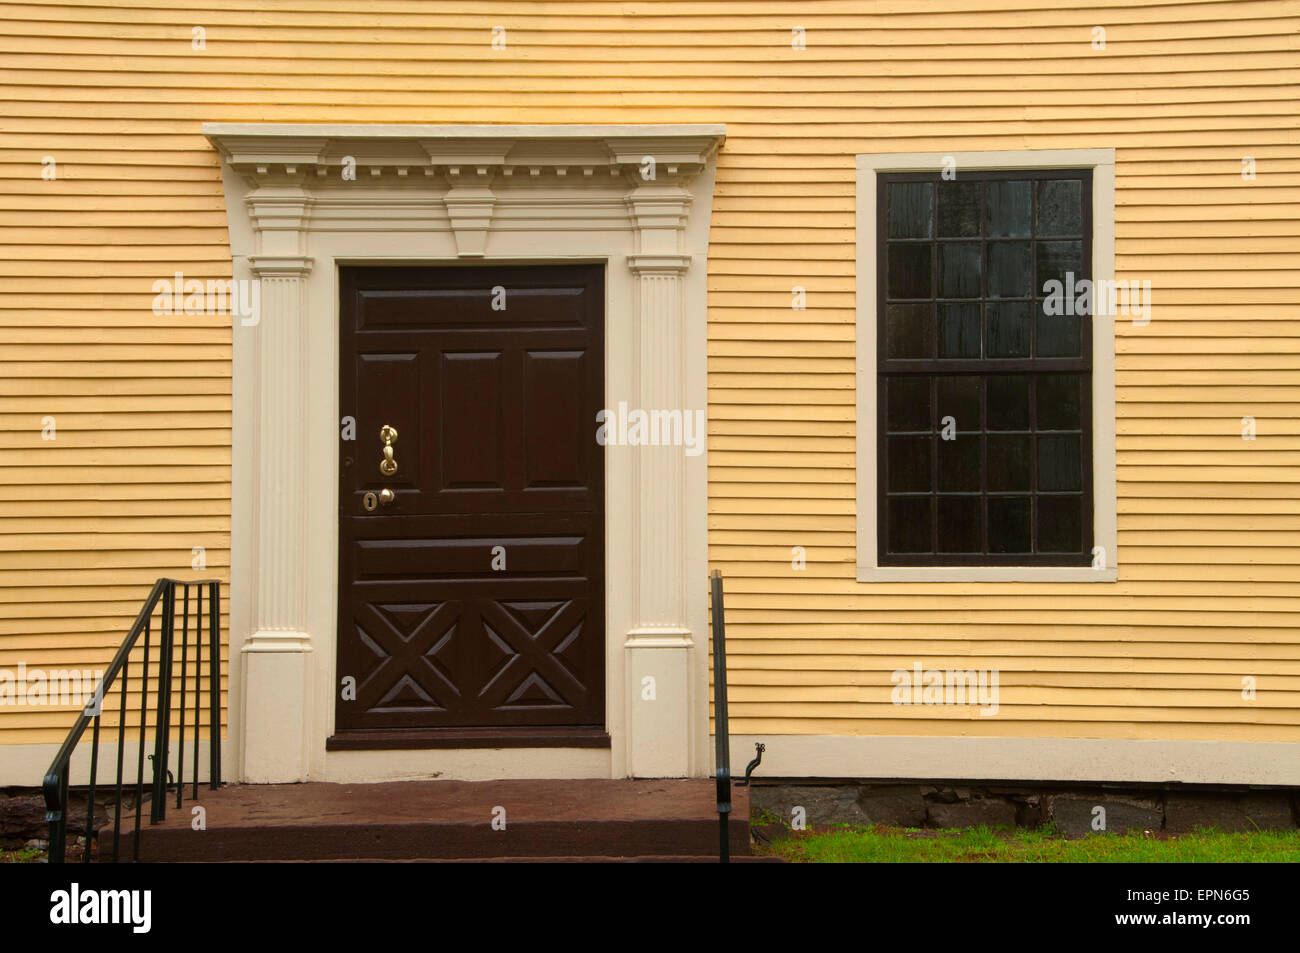 Silas Deane House, Wethersfield, Connecticut - Stock Image